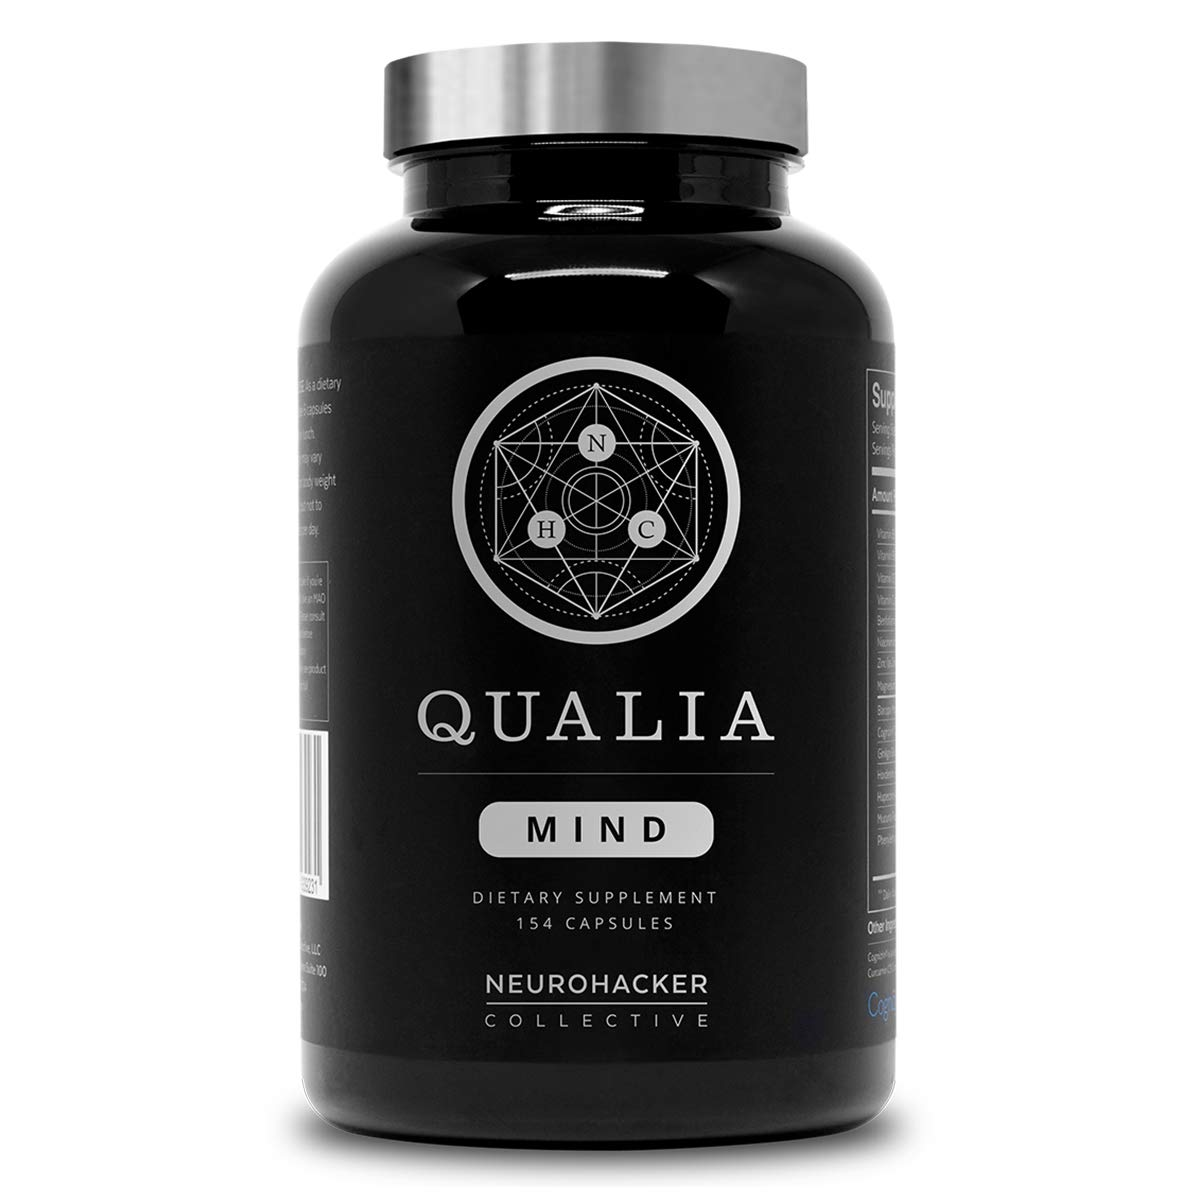 Qualia Mind Nootropics | Top Brain Supplement for Memory, Focus, Mental Energy, and Concentration with Ginkgo biloba, Alpha GPC, Bacopa monnieri, Celastrus paniculatus, DHA & More.(154 Ct) by NEUROHACKER COLLECTIVE (Image #9)